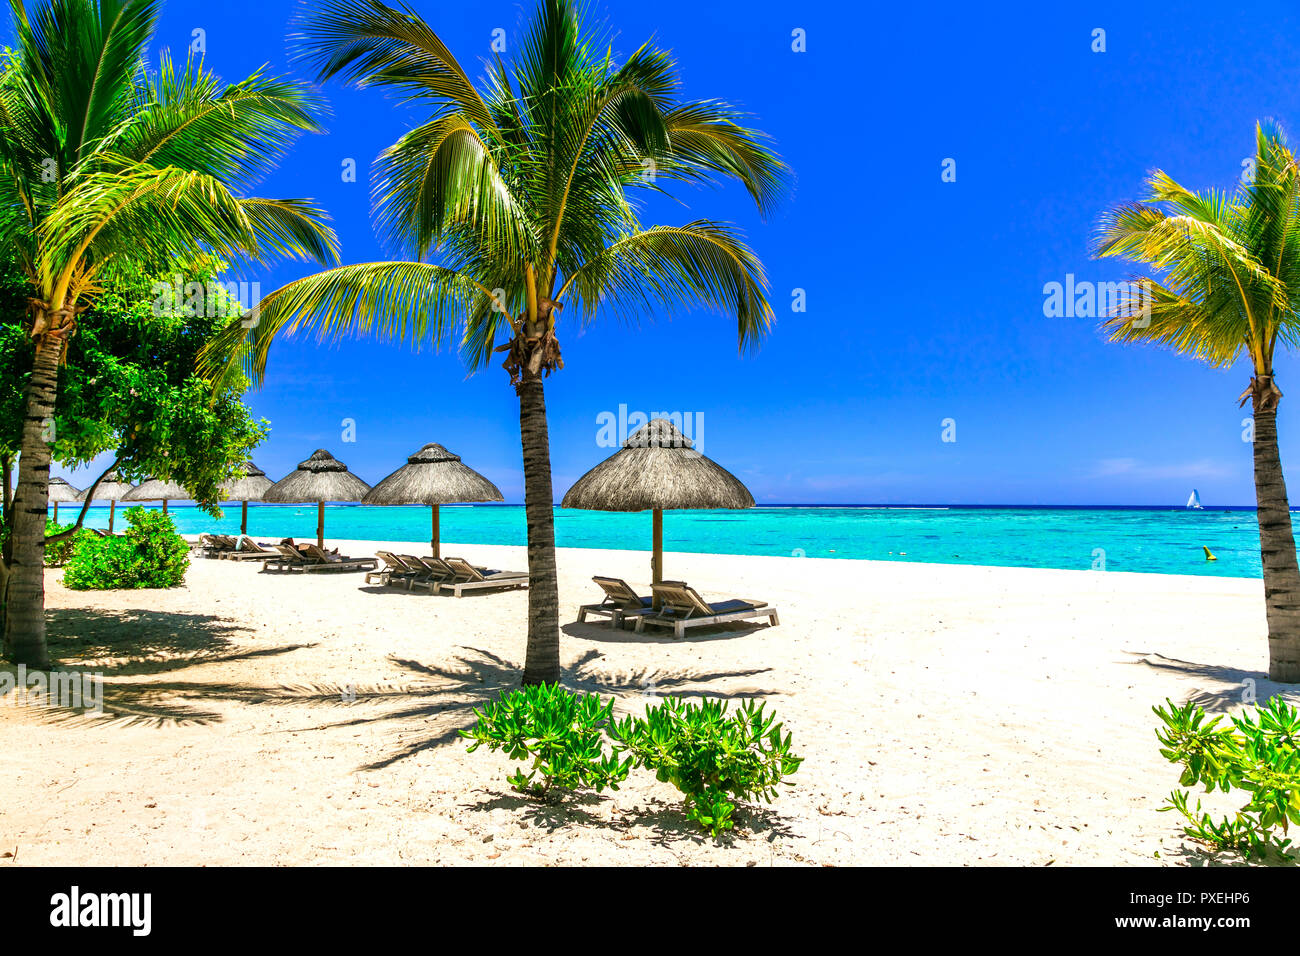 Tropical paradise in Mauritius island. - Stock Image